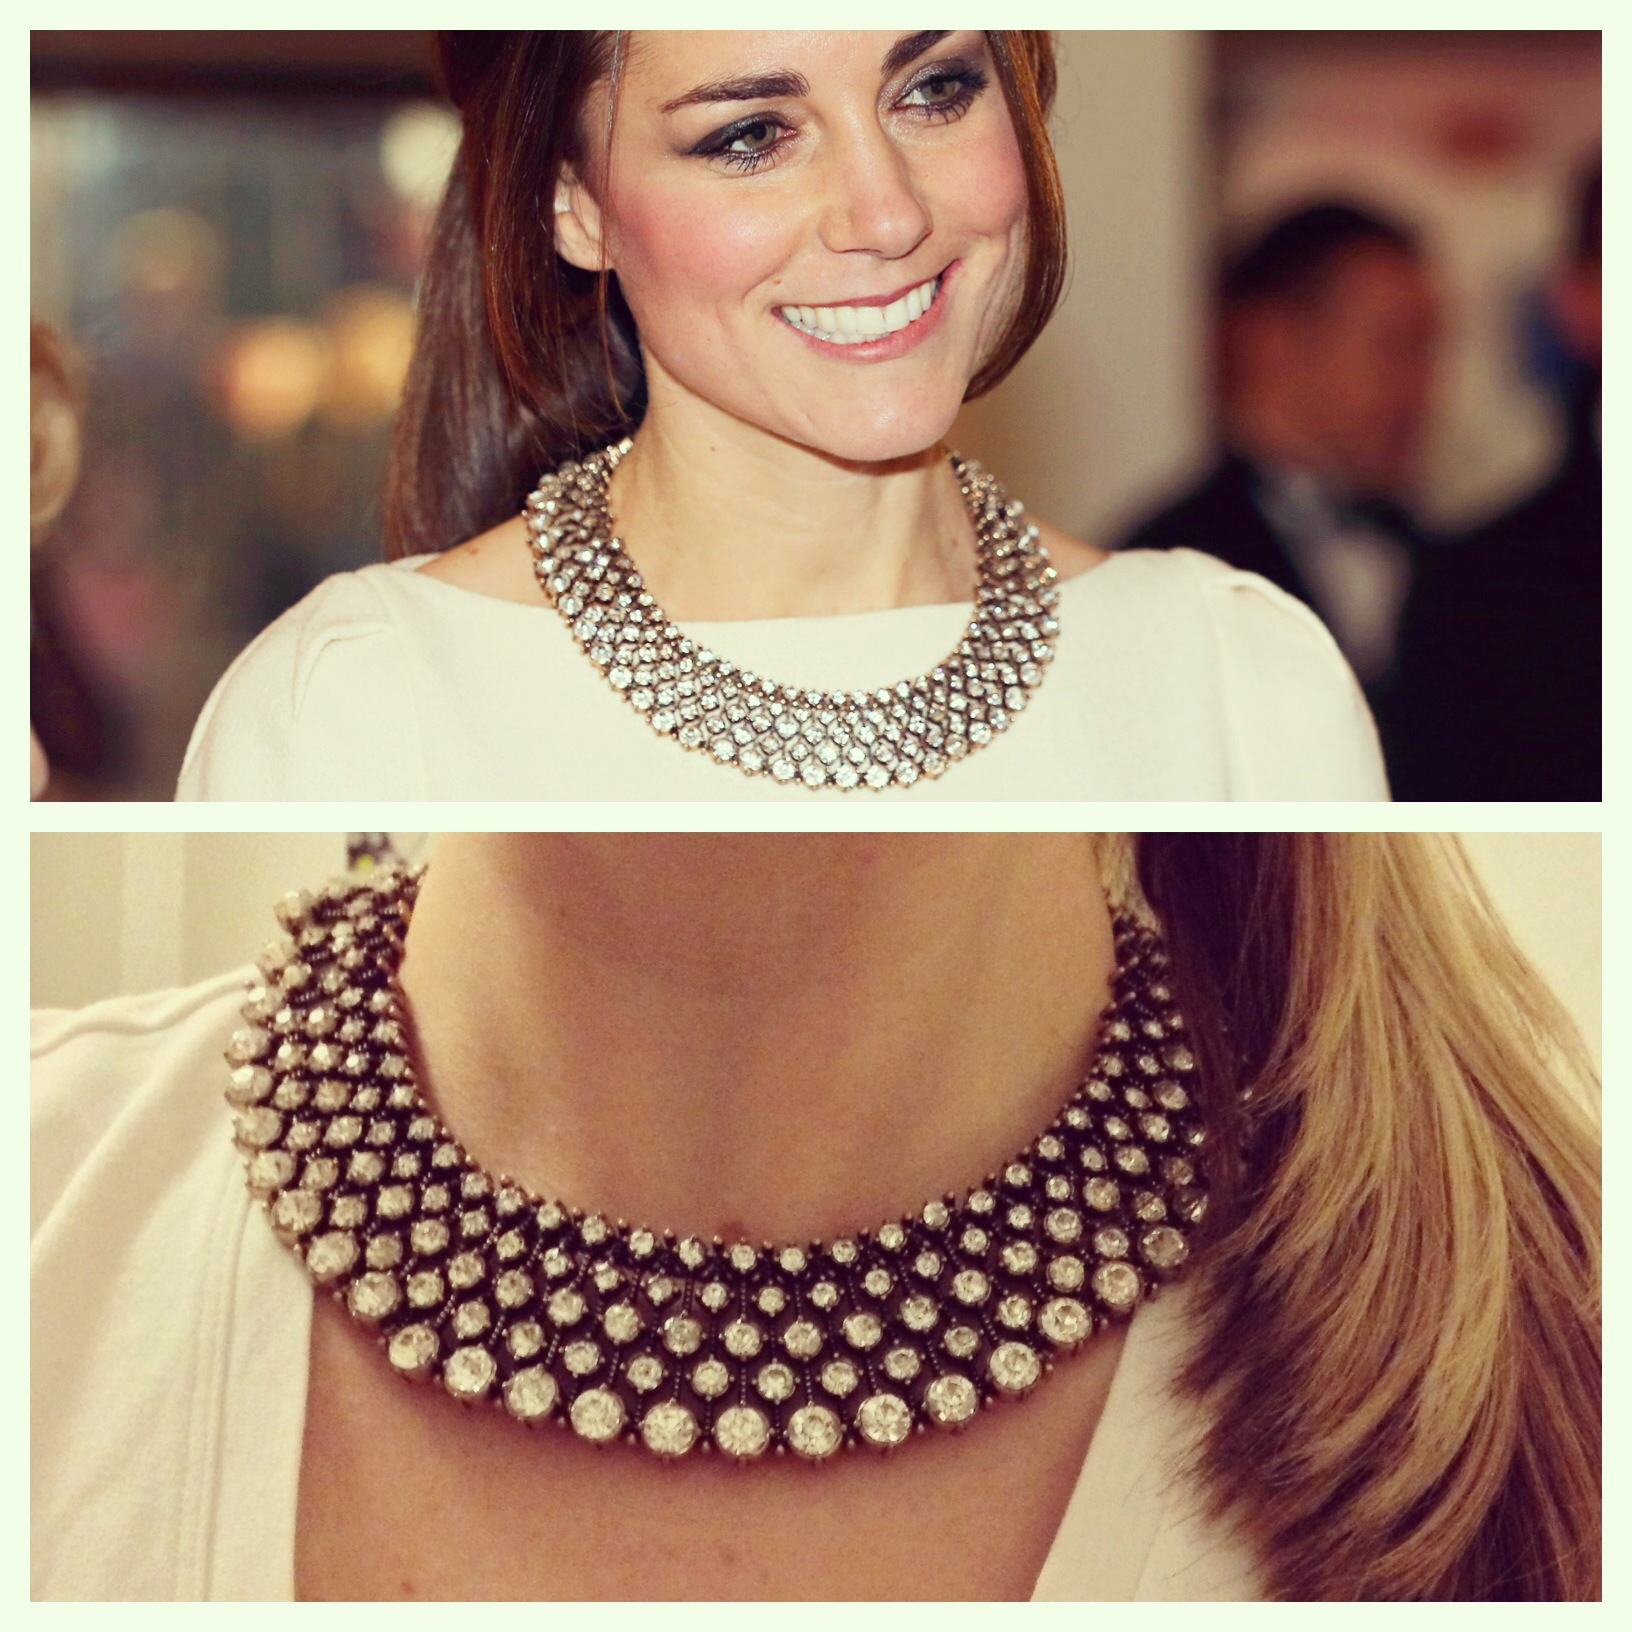 Kate Middleton in Zara necklace